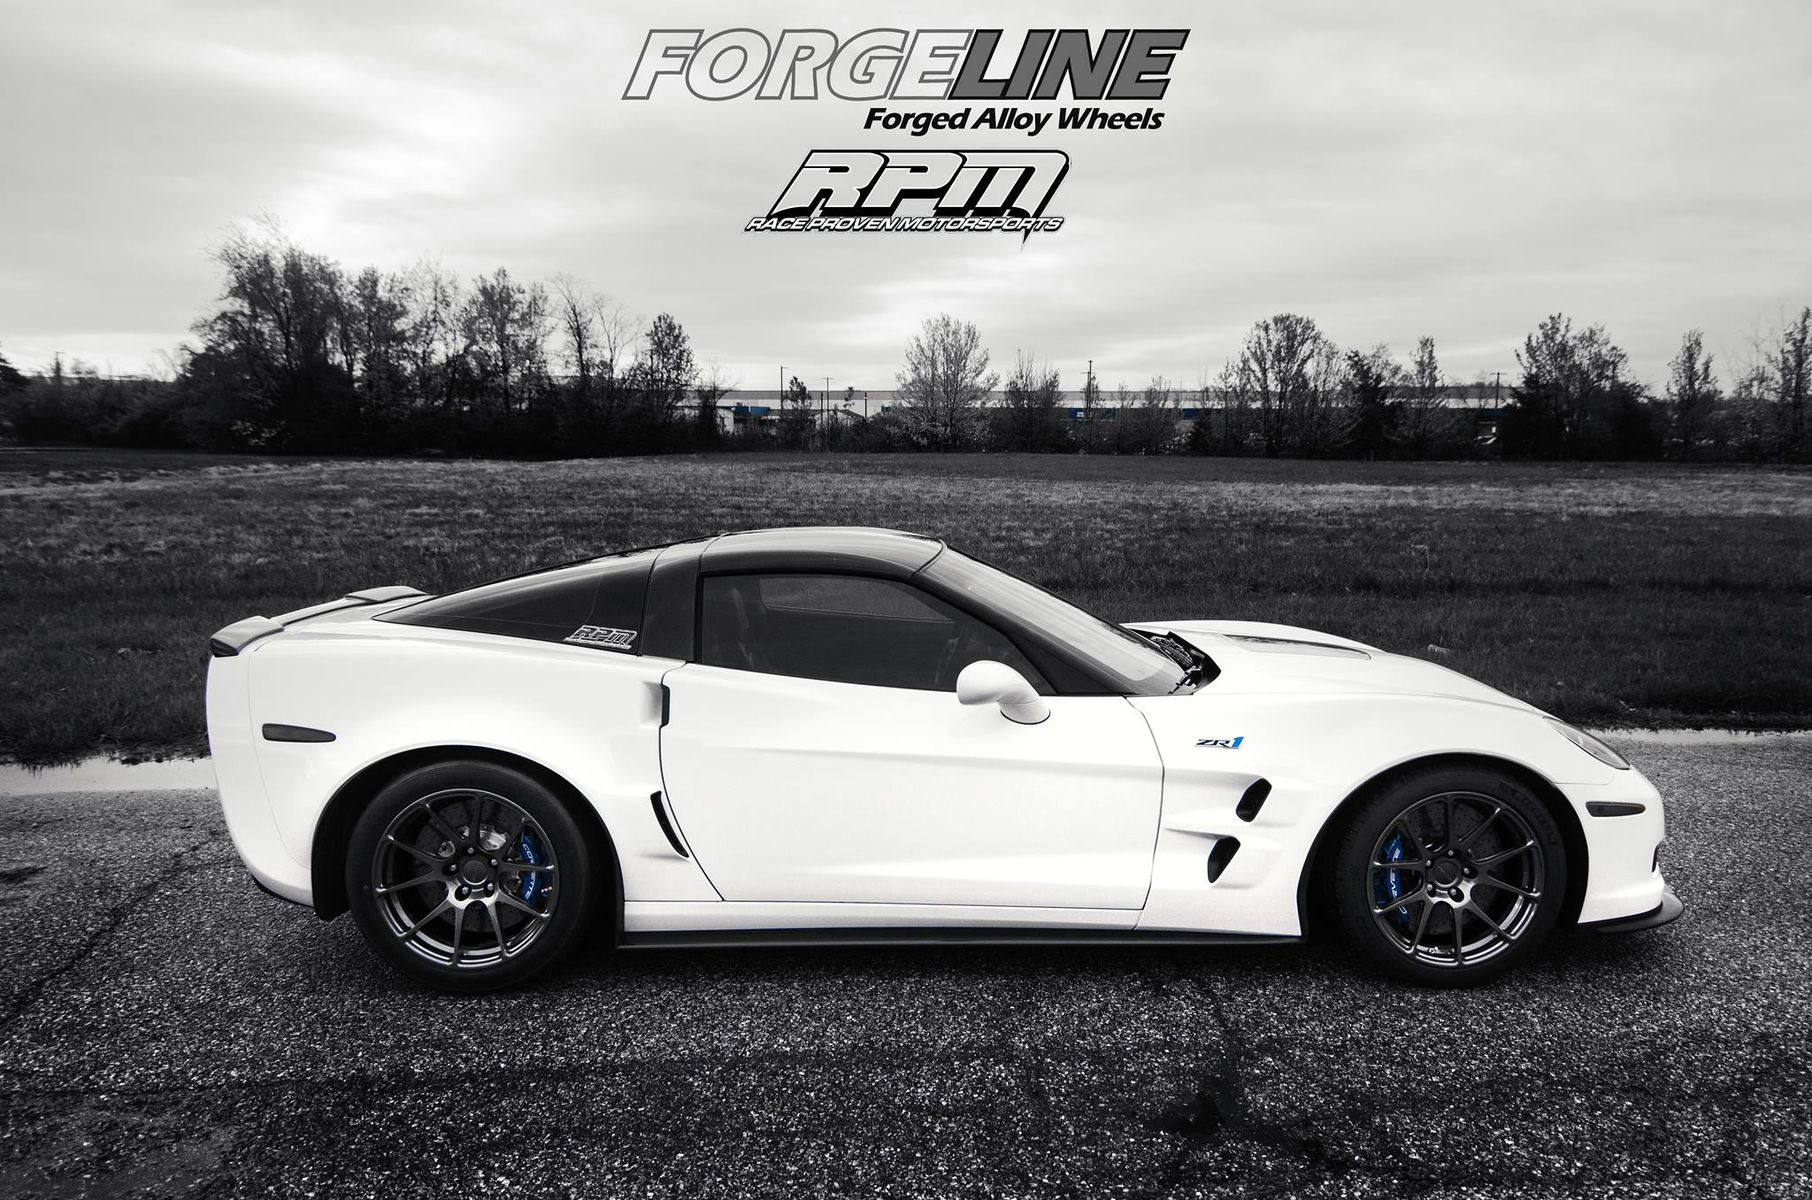 2013 Chevrolet Corvette ZR1 | Fran's Race Proven Motorsports C6 Corvette ZR1 on Forgeline One Piece Forged Monoblock GA1R Wheels